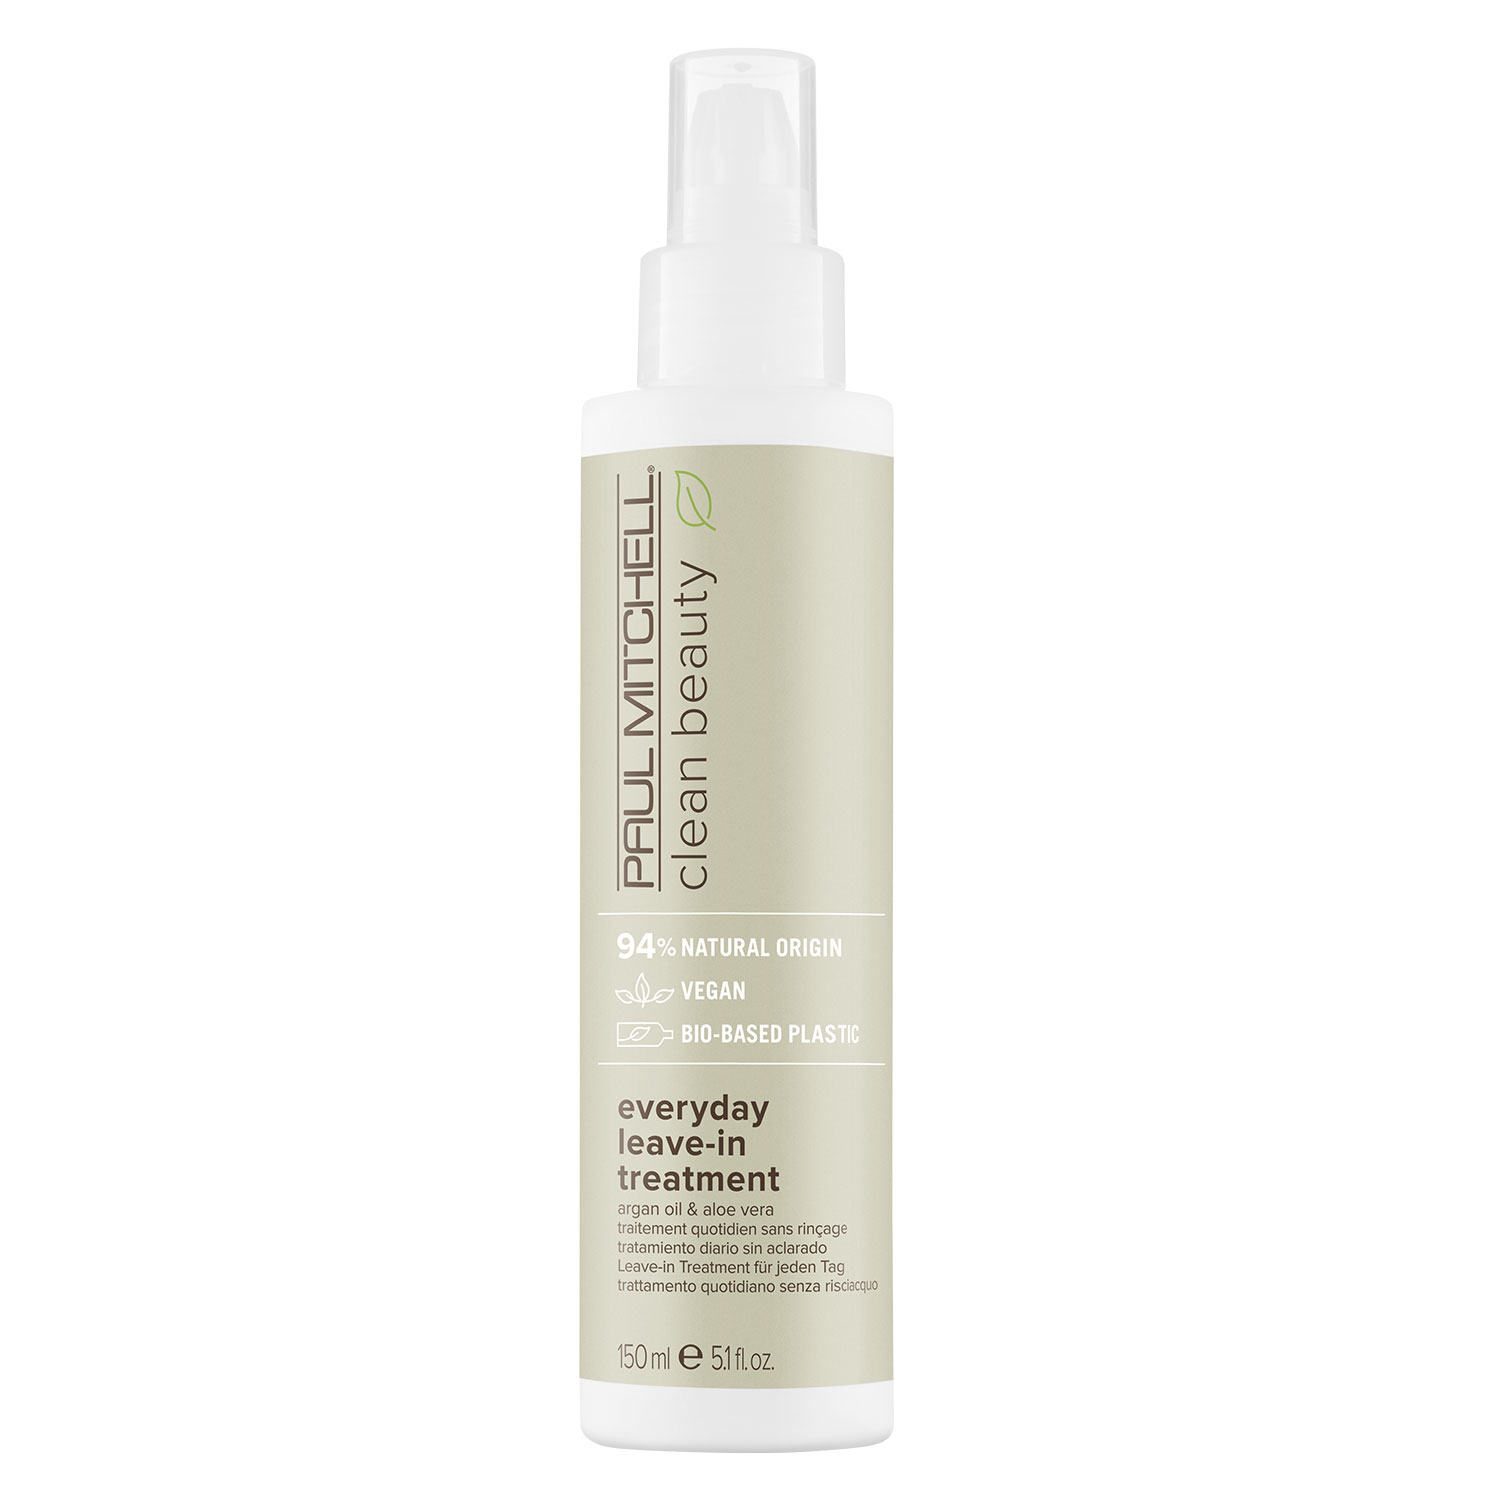 Paul Mitchell Clean Beauty - Everyday Leave-In Treatment